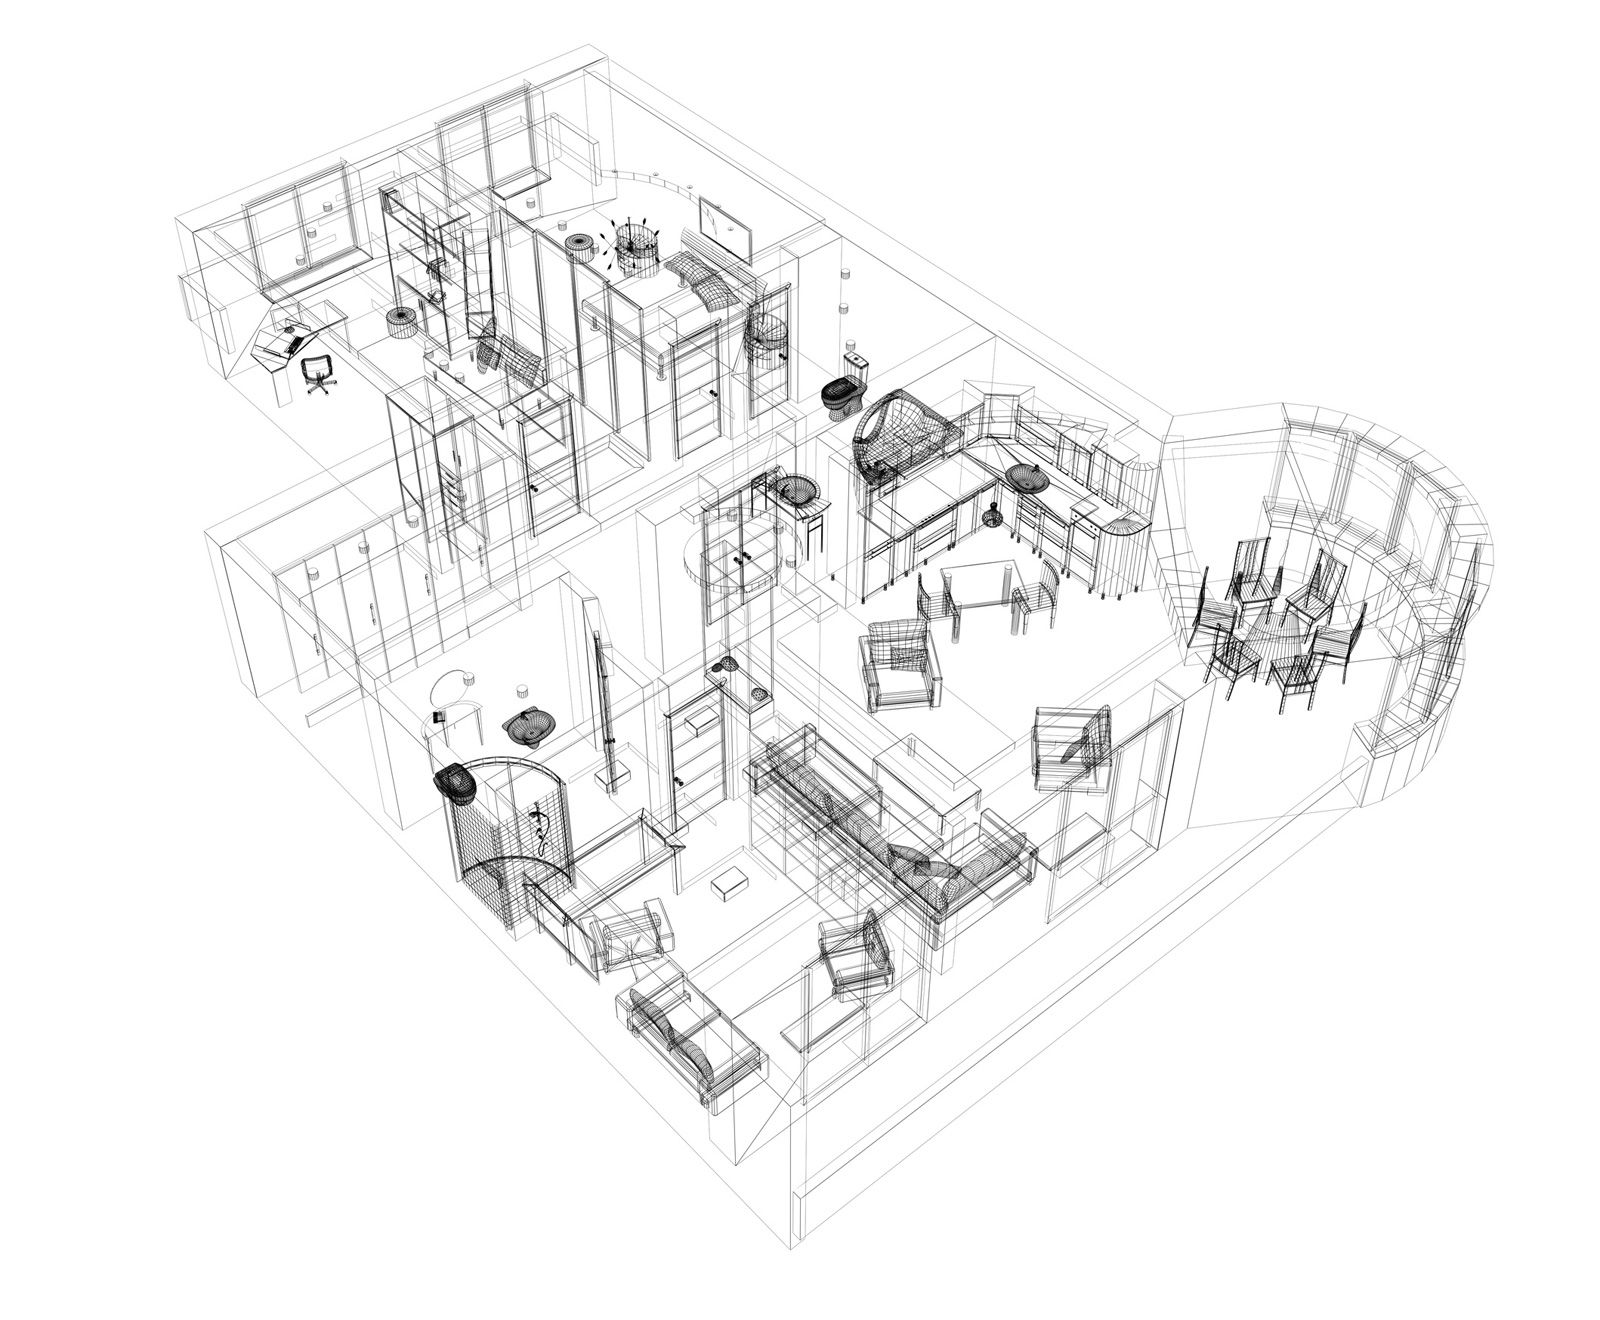 Good 3D Building Scheme and Floor Plans Ideas for House and Office